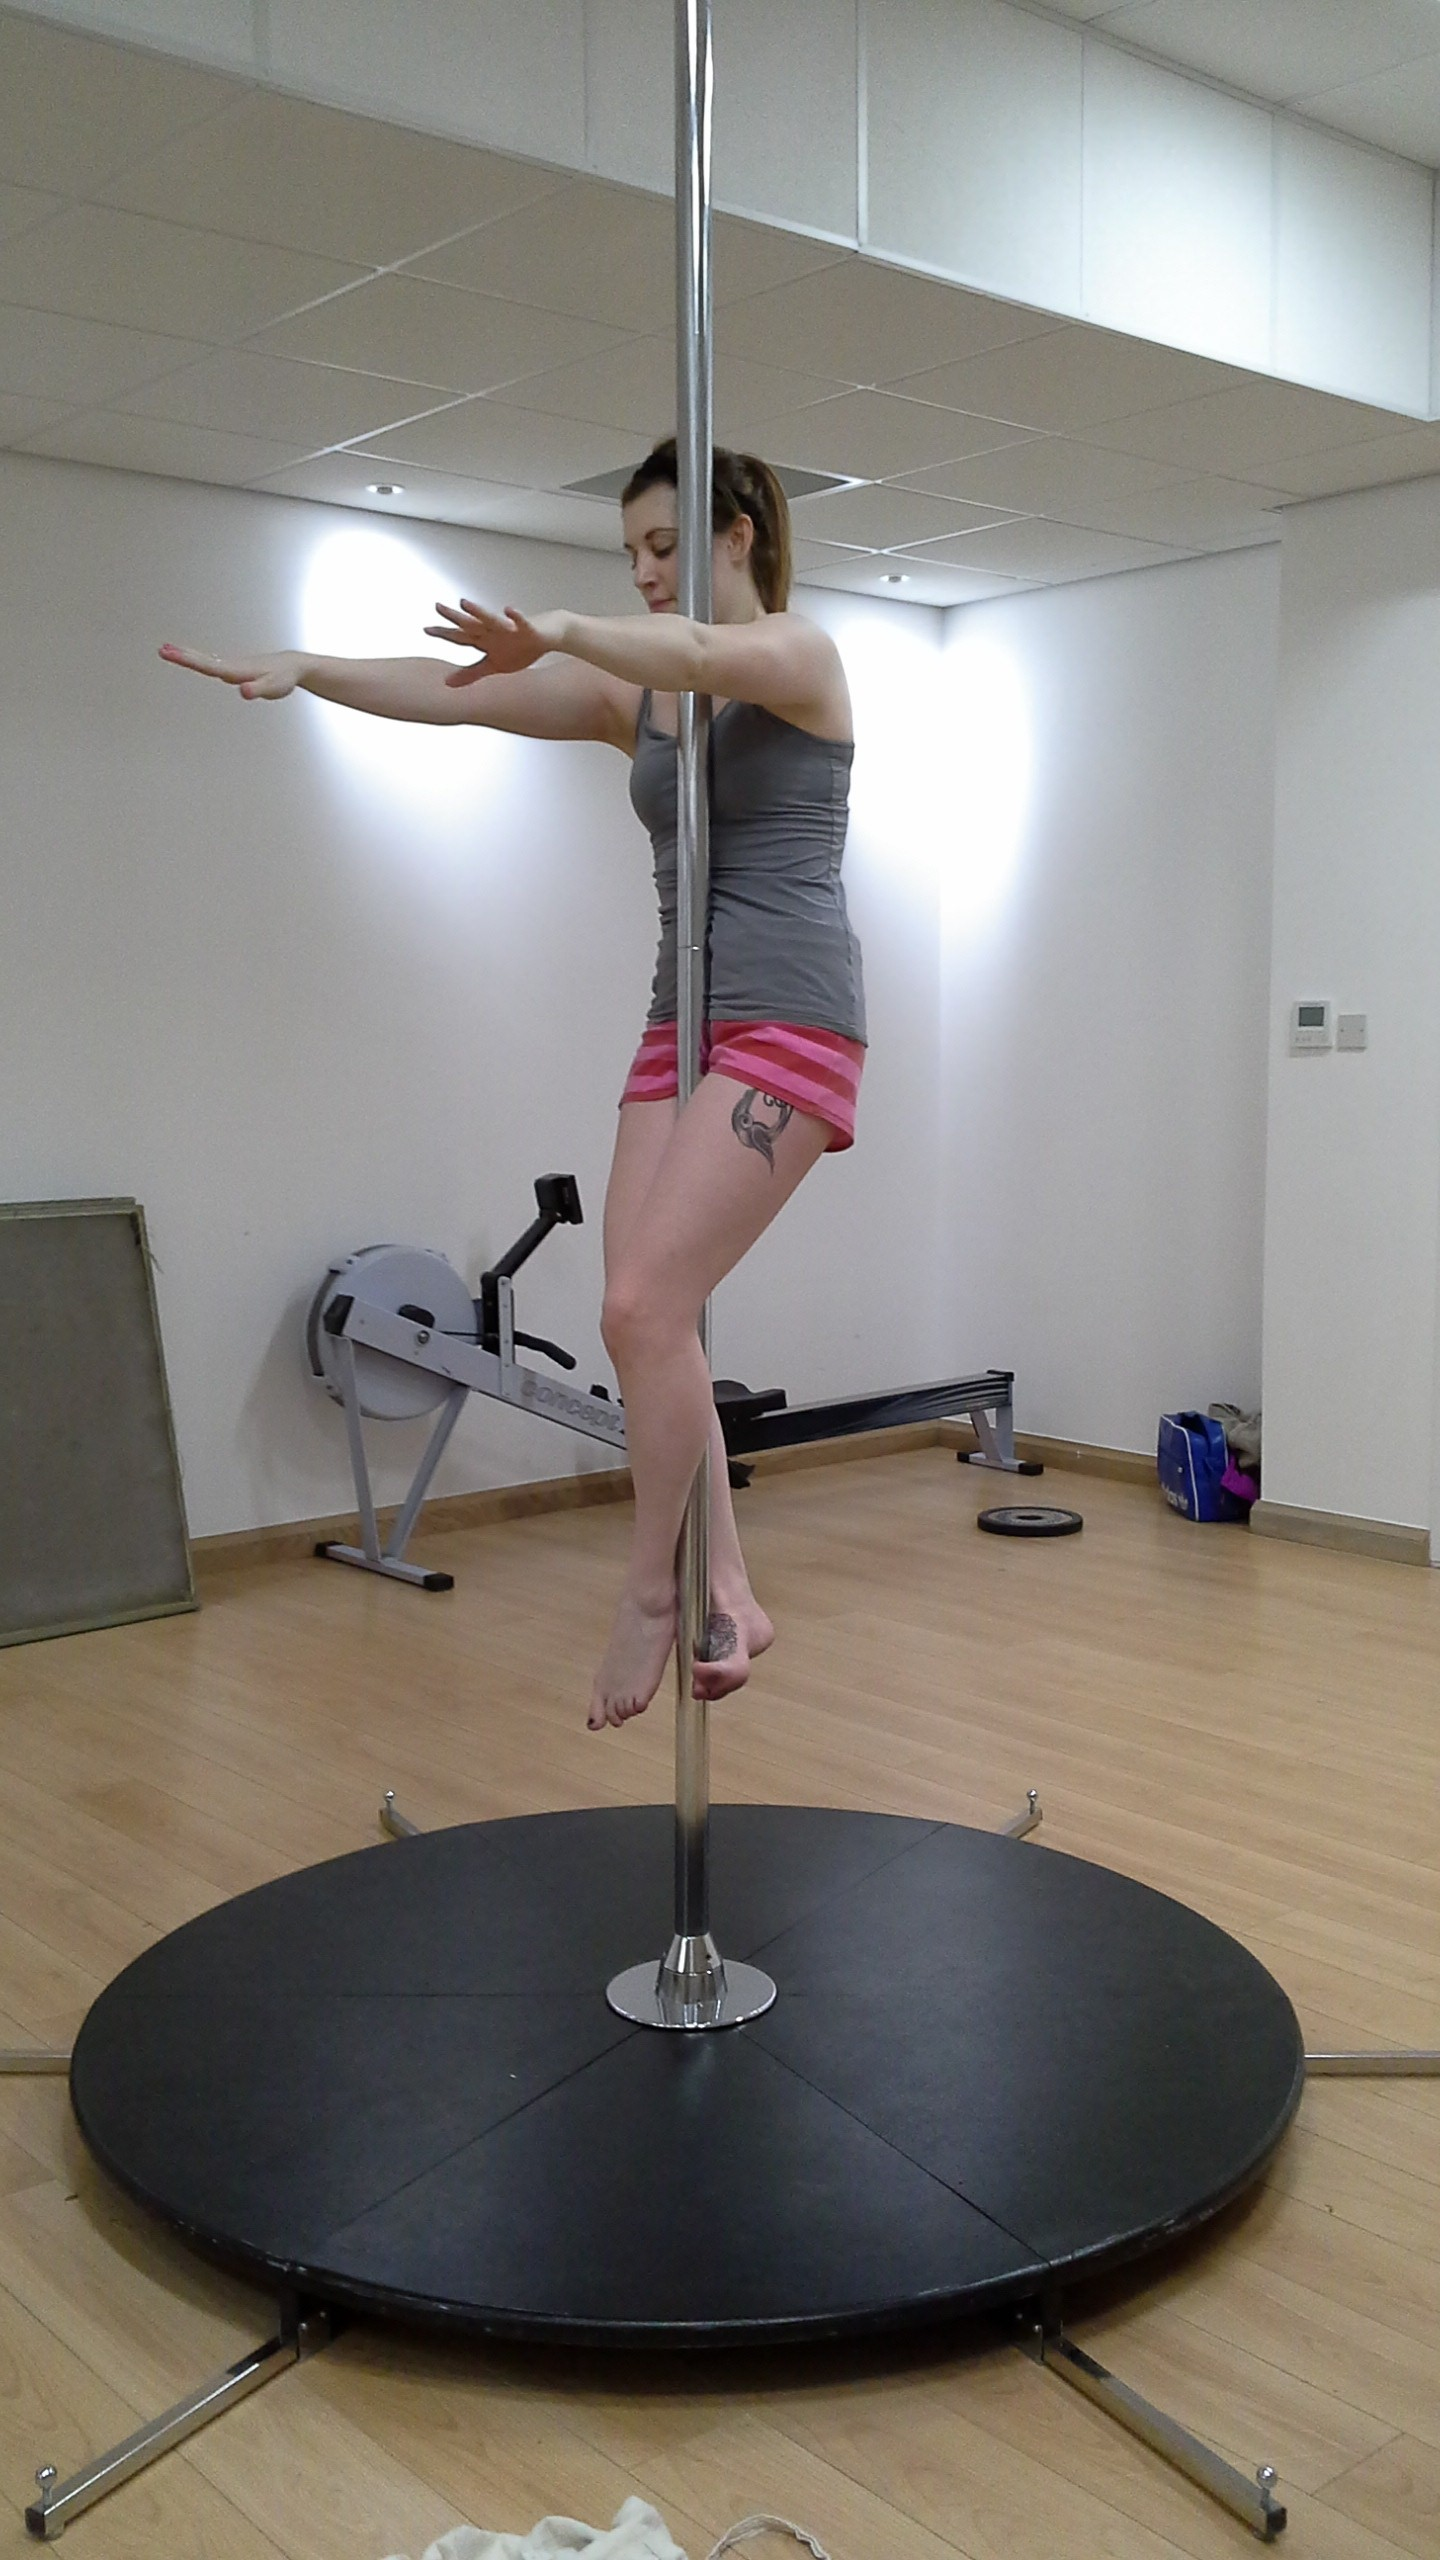 Here's a few 'Pole Progress' shots from some brave ladies #week 1!